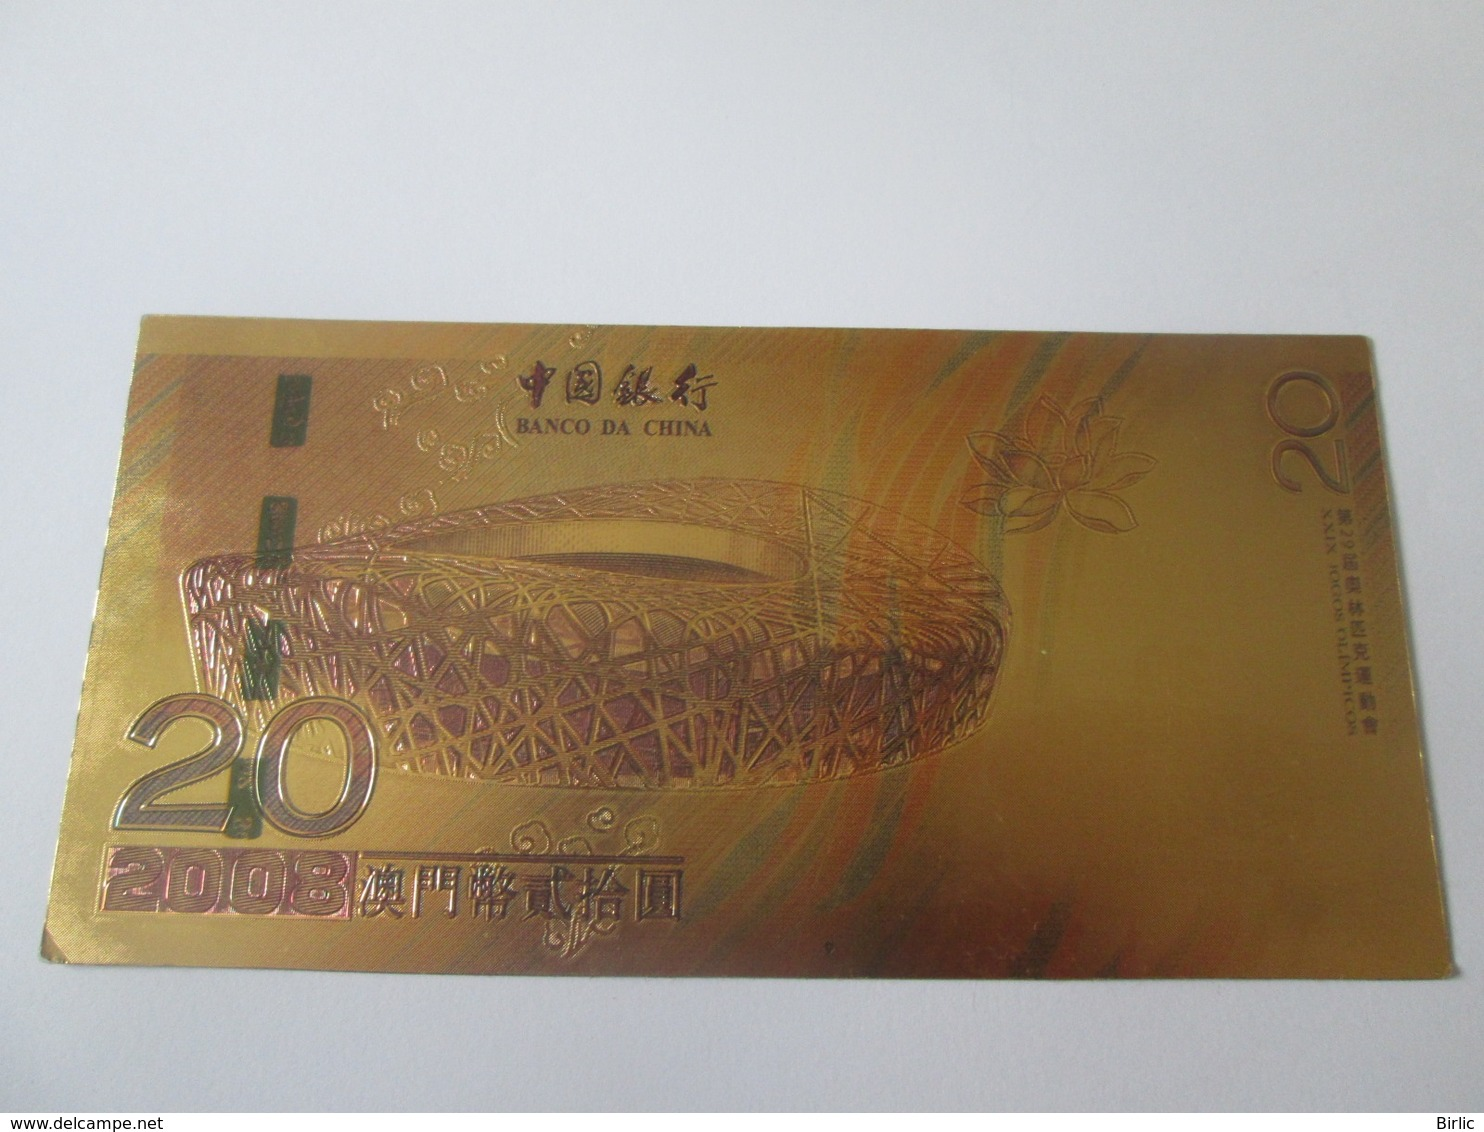 Macau-Beijing Olympic Games Commemorative Banknote 20 Patacas 2008 Color Gold Foil Version In Very Good Conditions - Macao